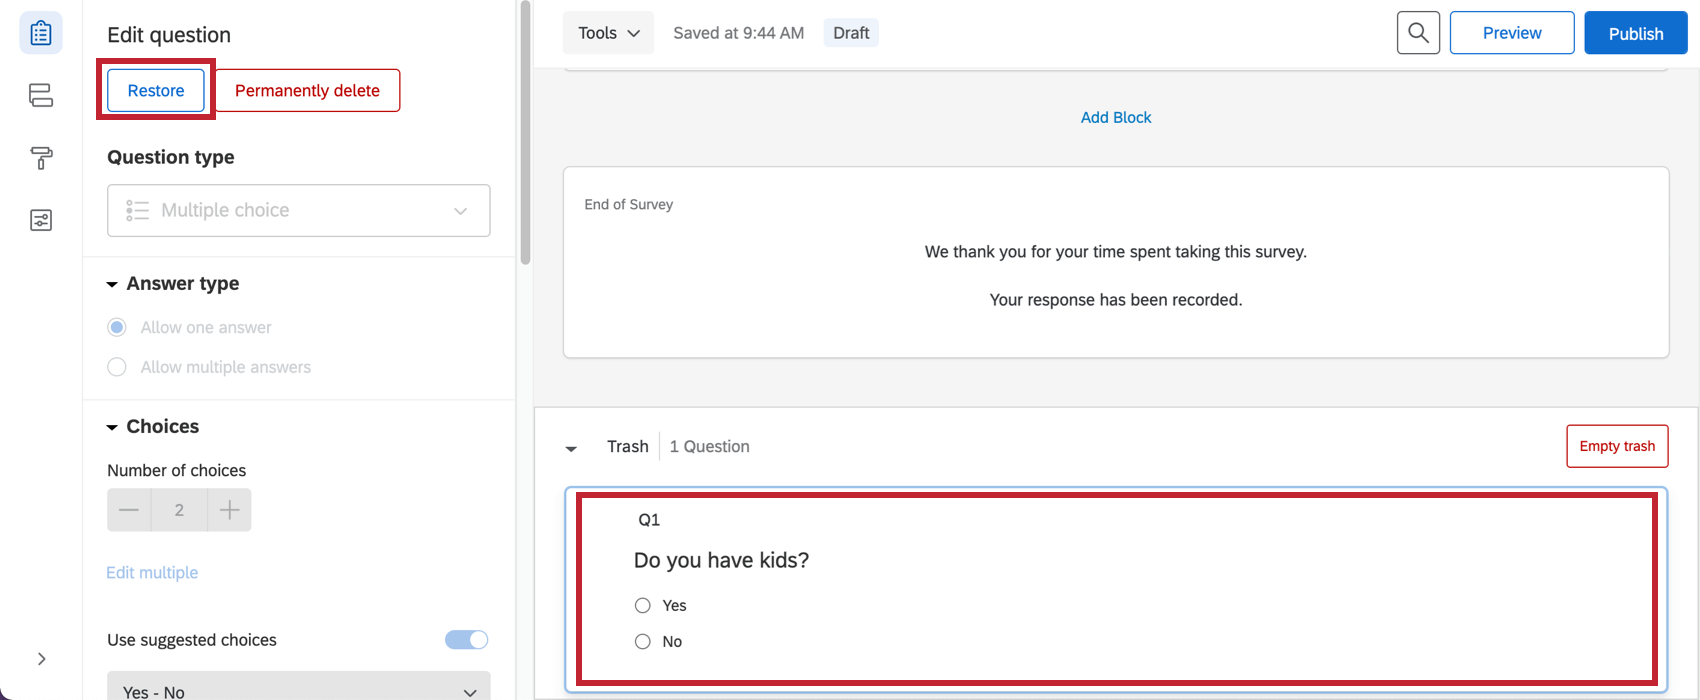 Restoring a question from the trash